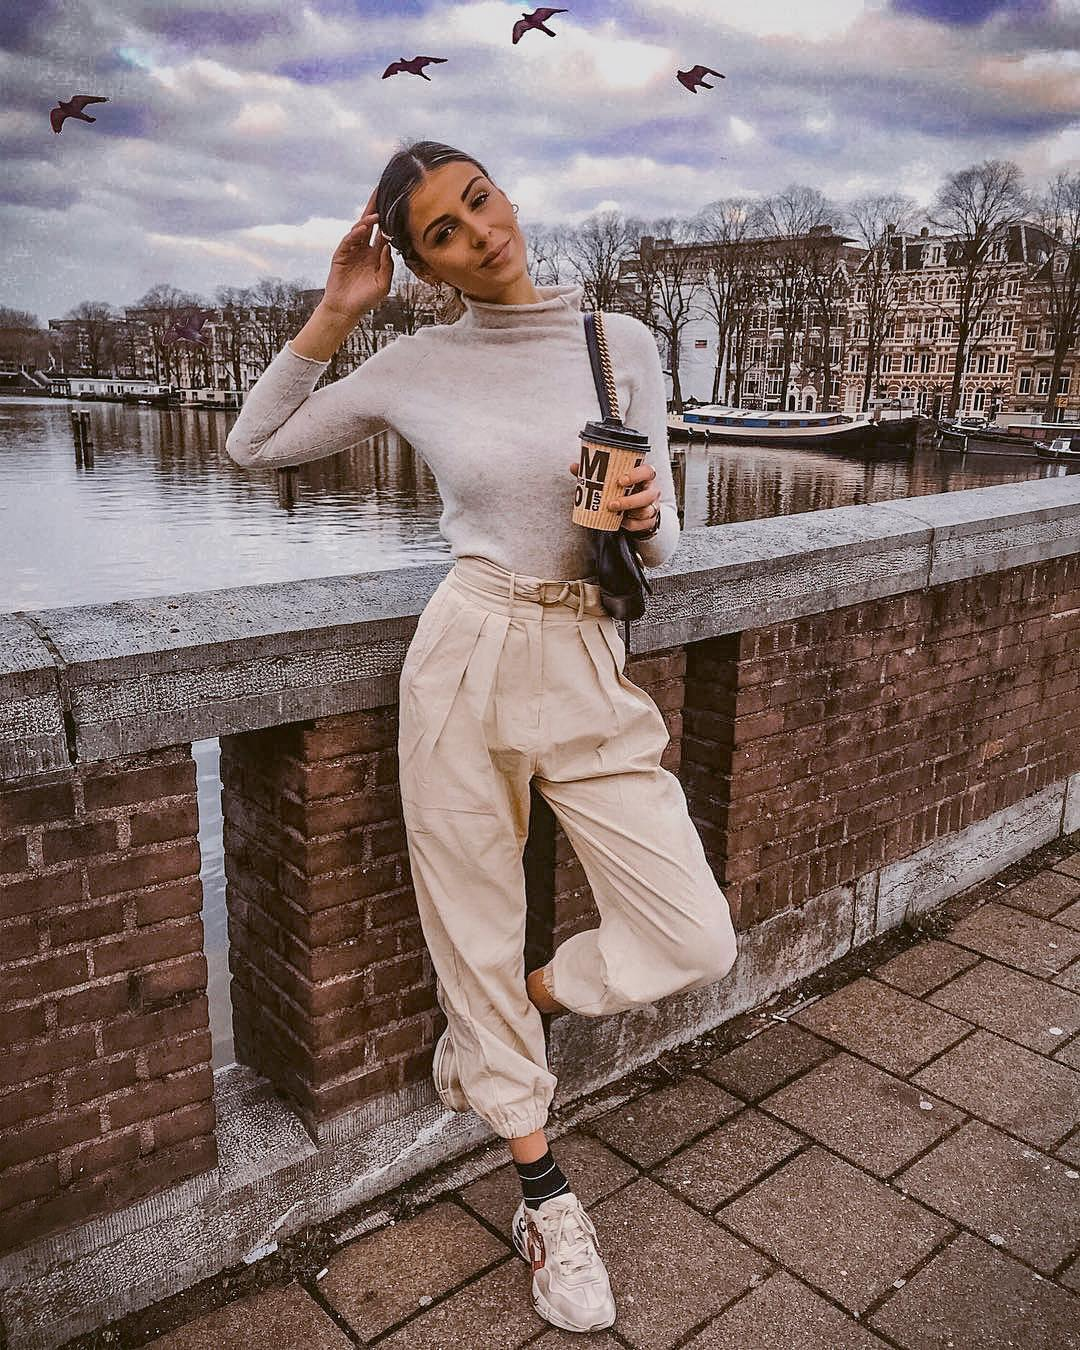 Cream Grey Sweater And Gathered Beige   Pants With Sneakers Outfit